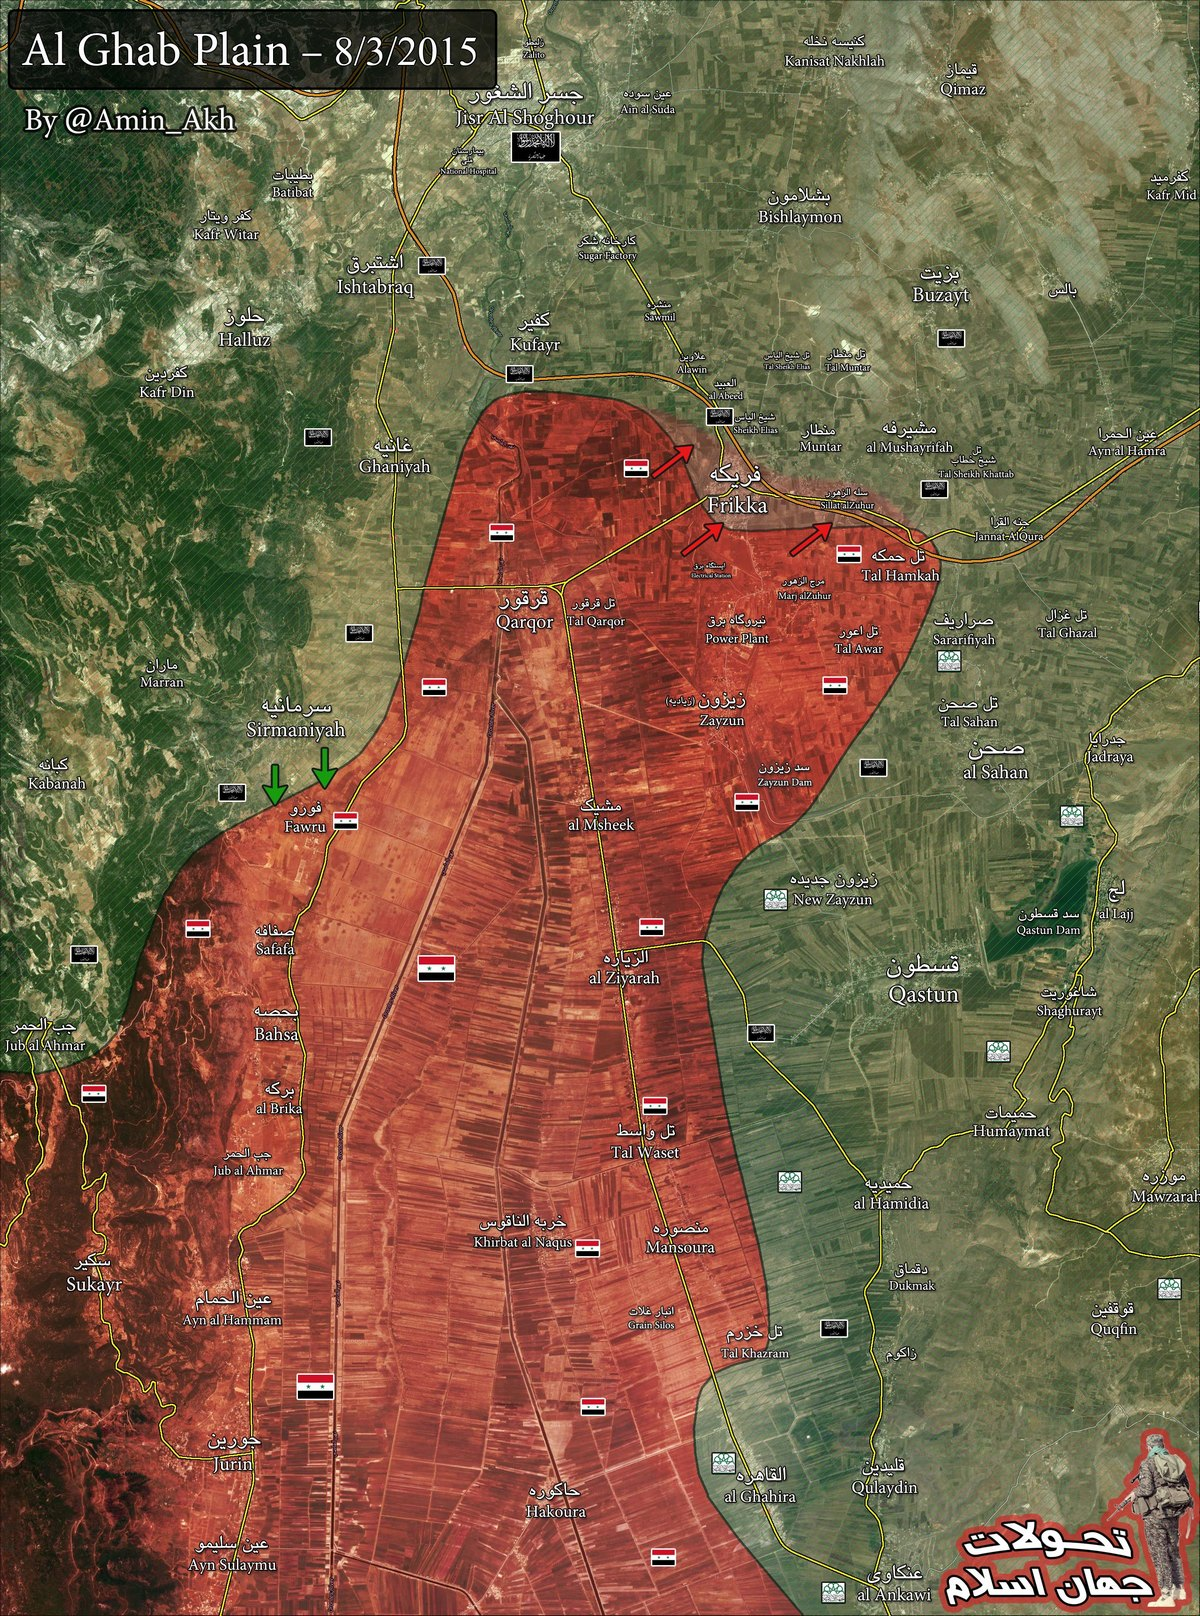 http://warsonline.info/images/stories/news/15/08aug/syria/idleb-map3aug15.jpg